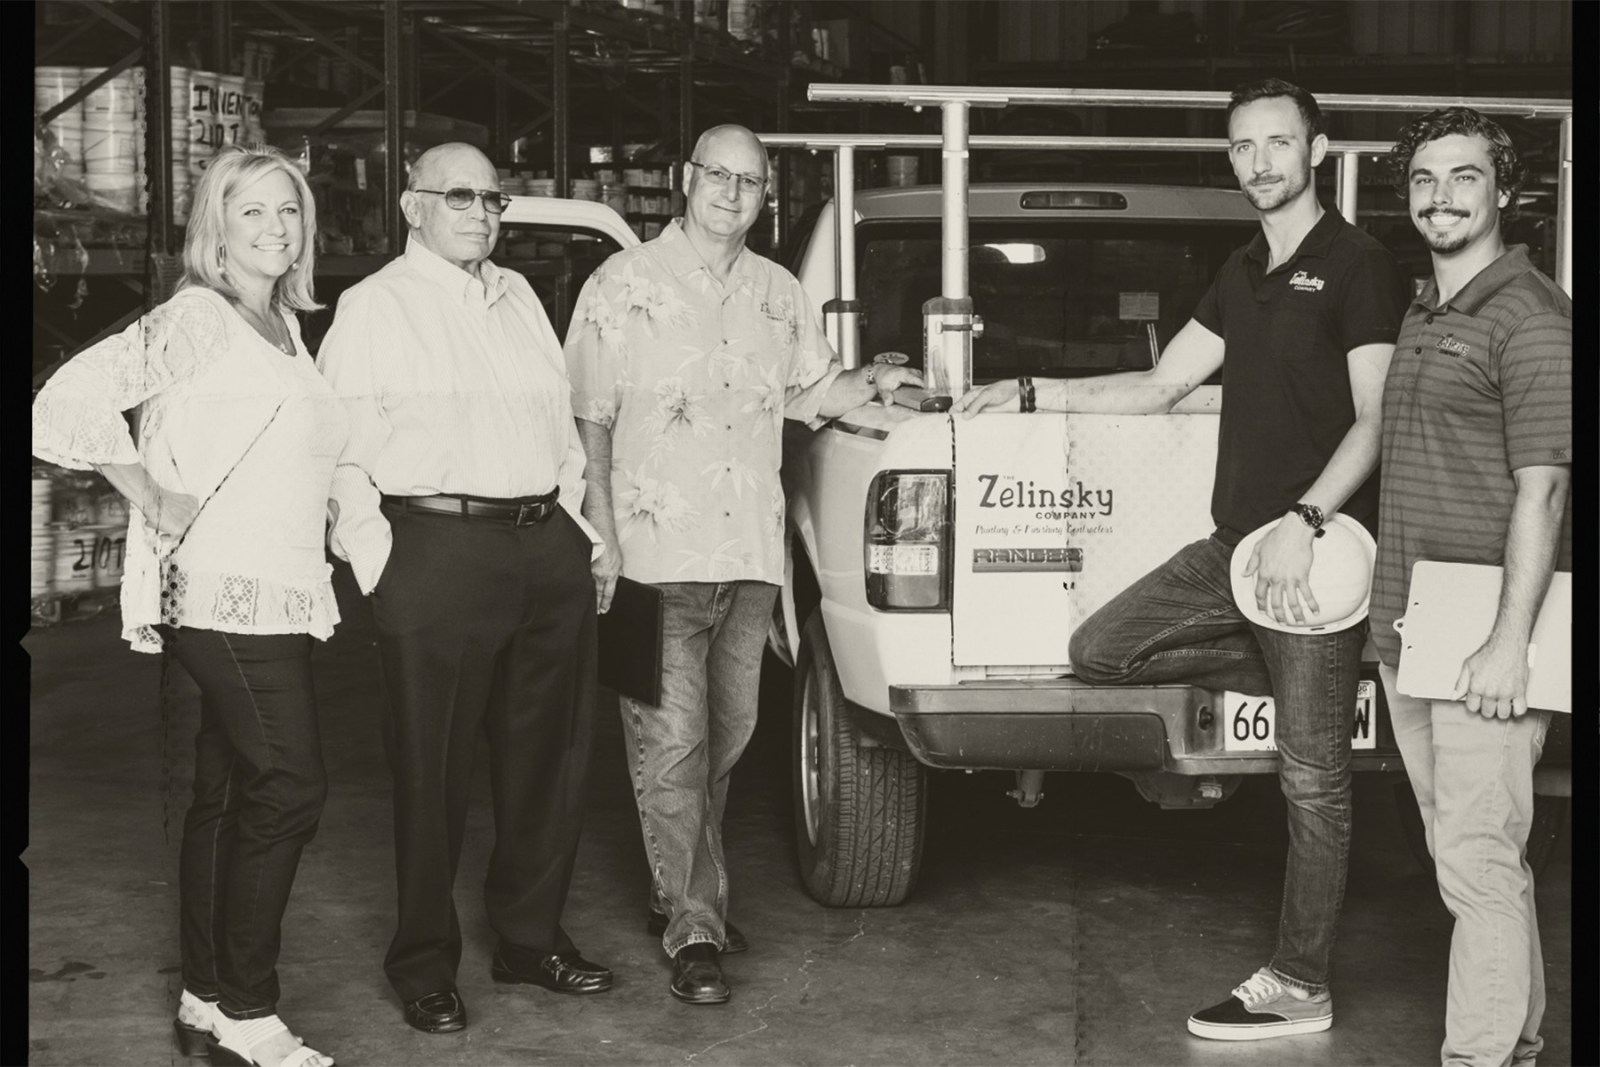 The Zelinsky Family with work truck